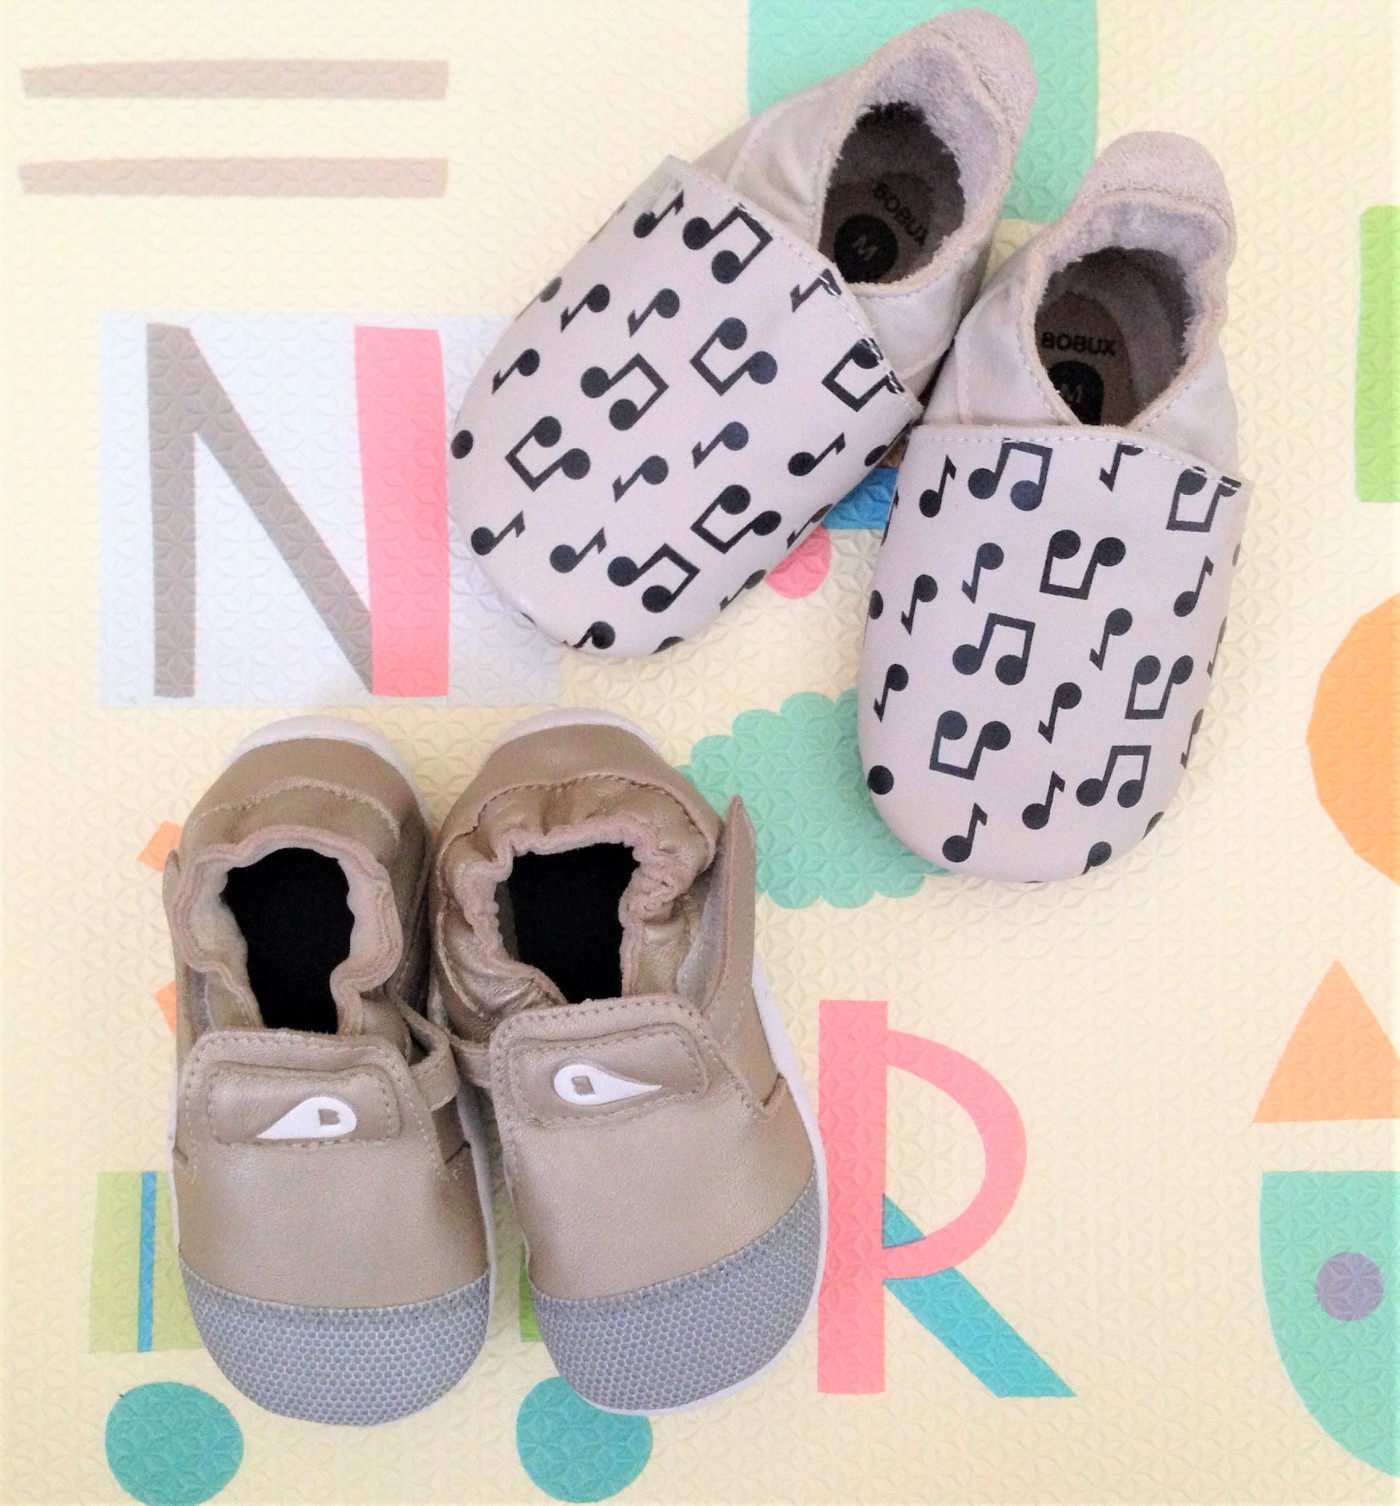 bobux canada soft sole baby shoes review